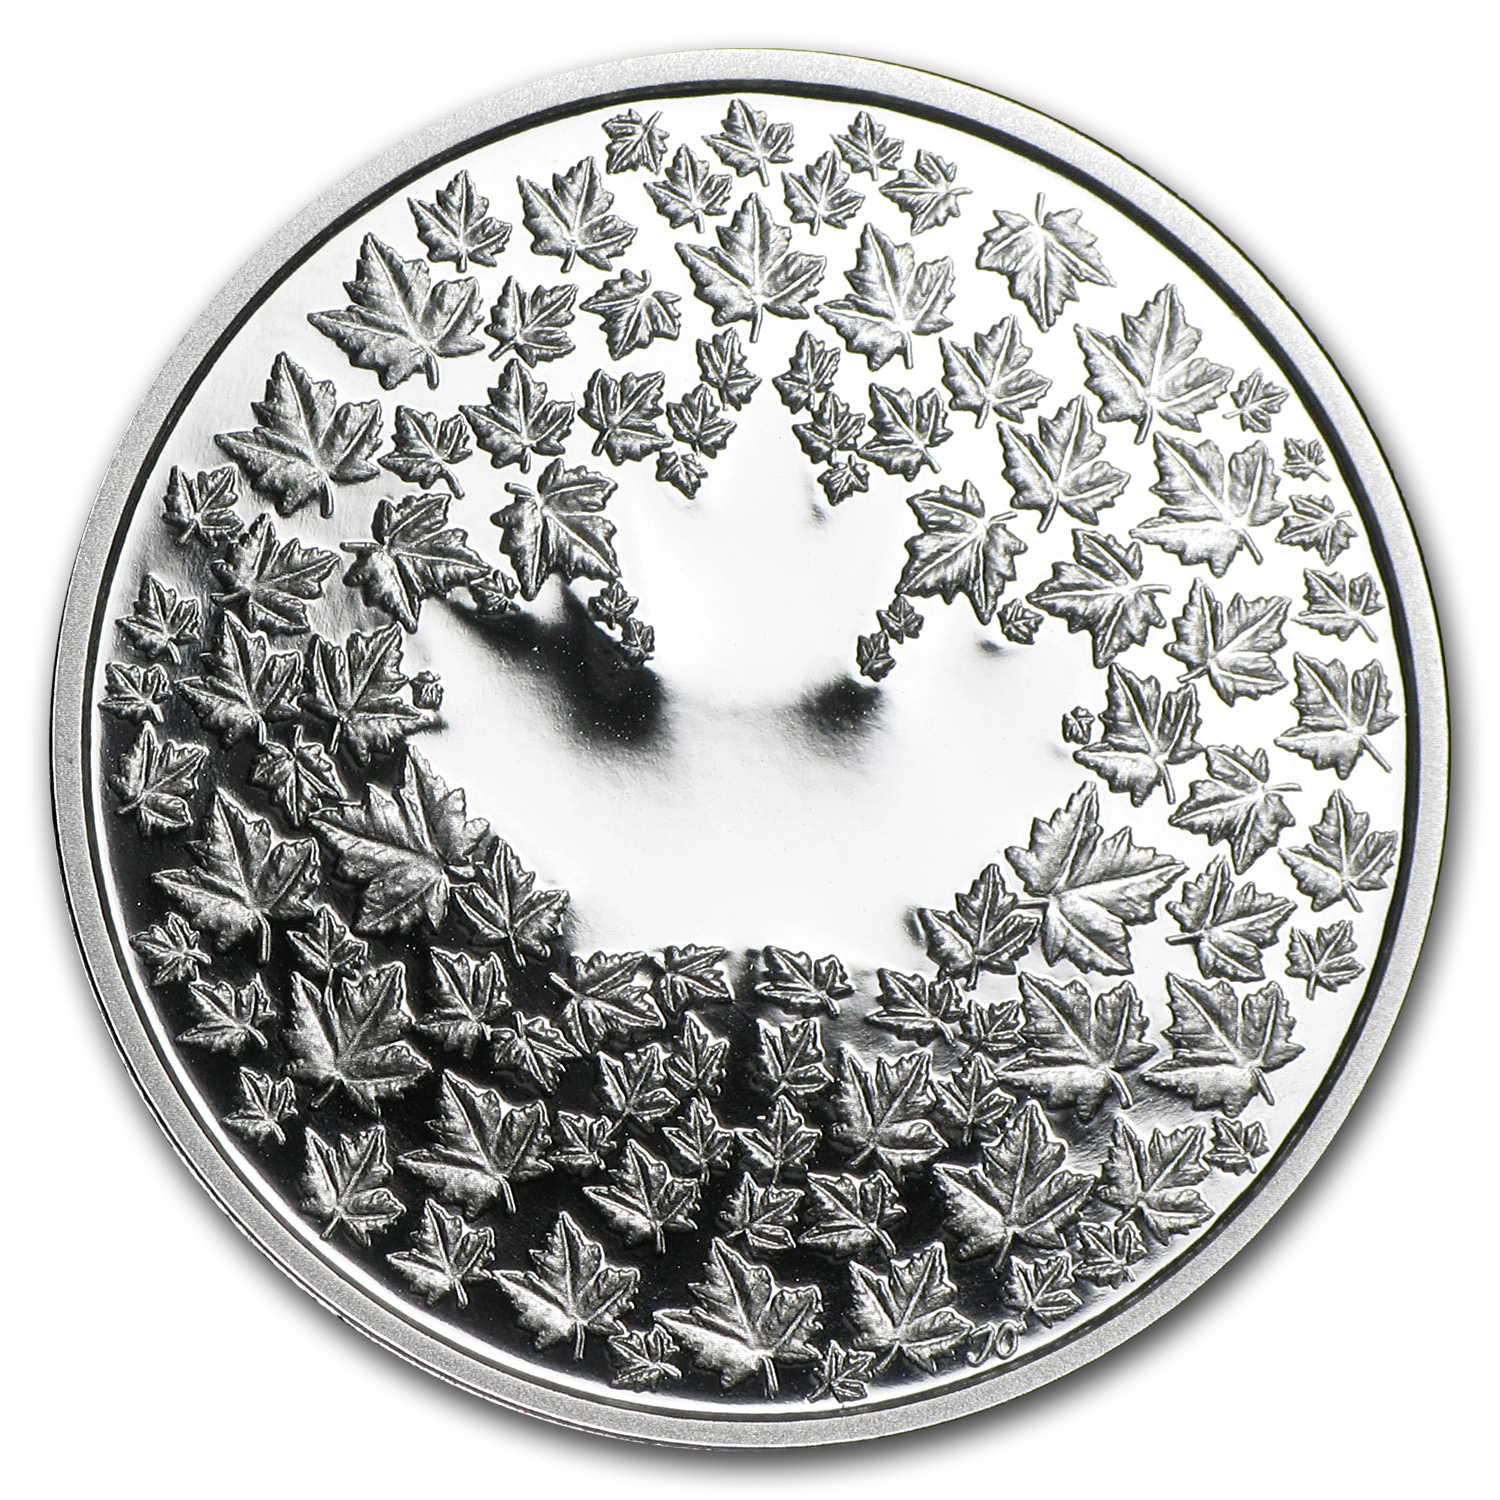 2013 1/4 oz Silver Canadian $3 Maple Leaf Impression